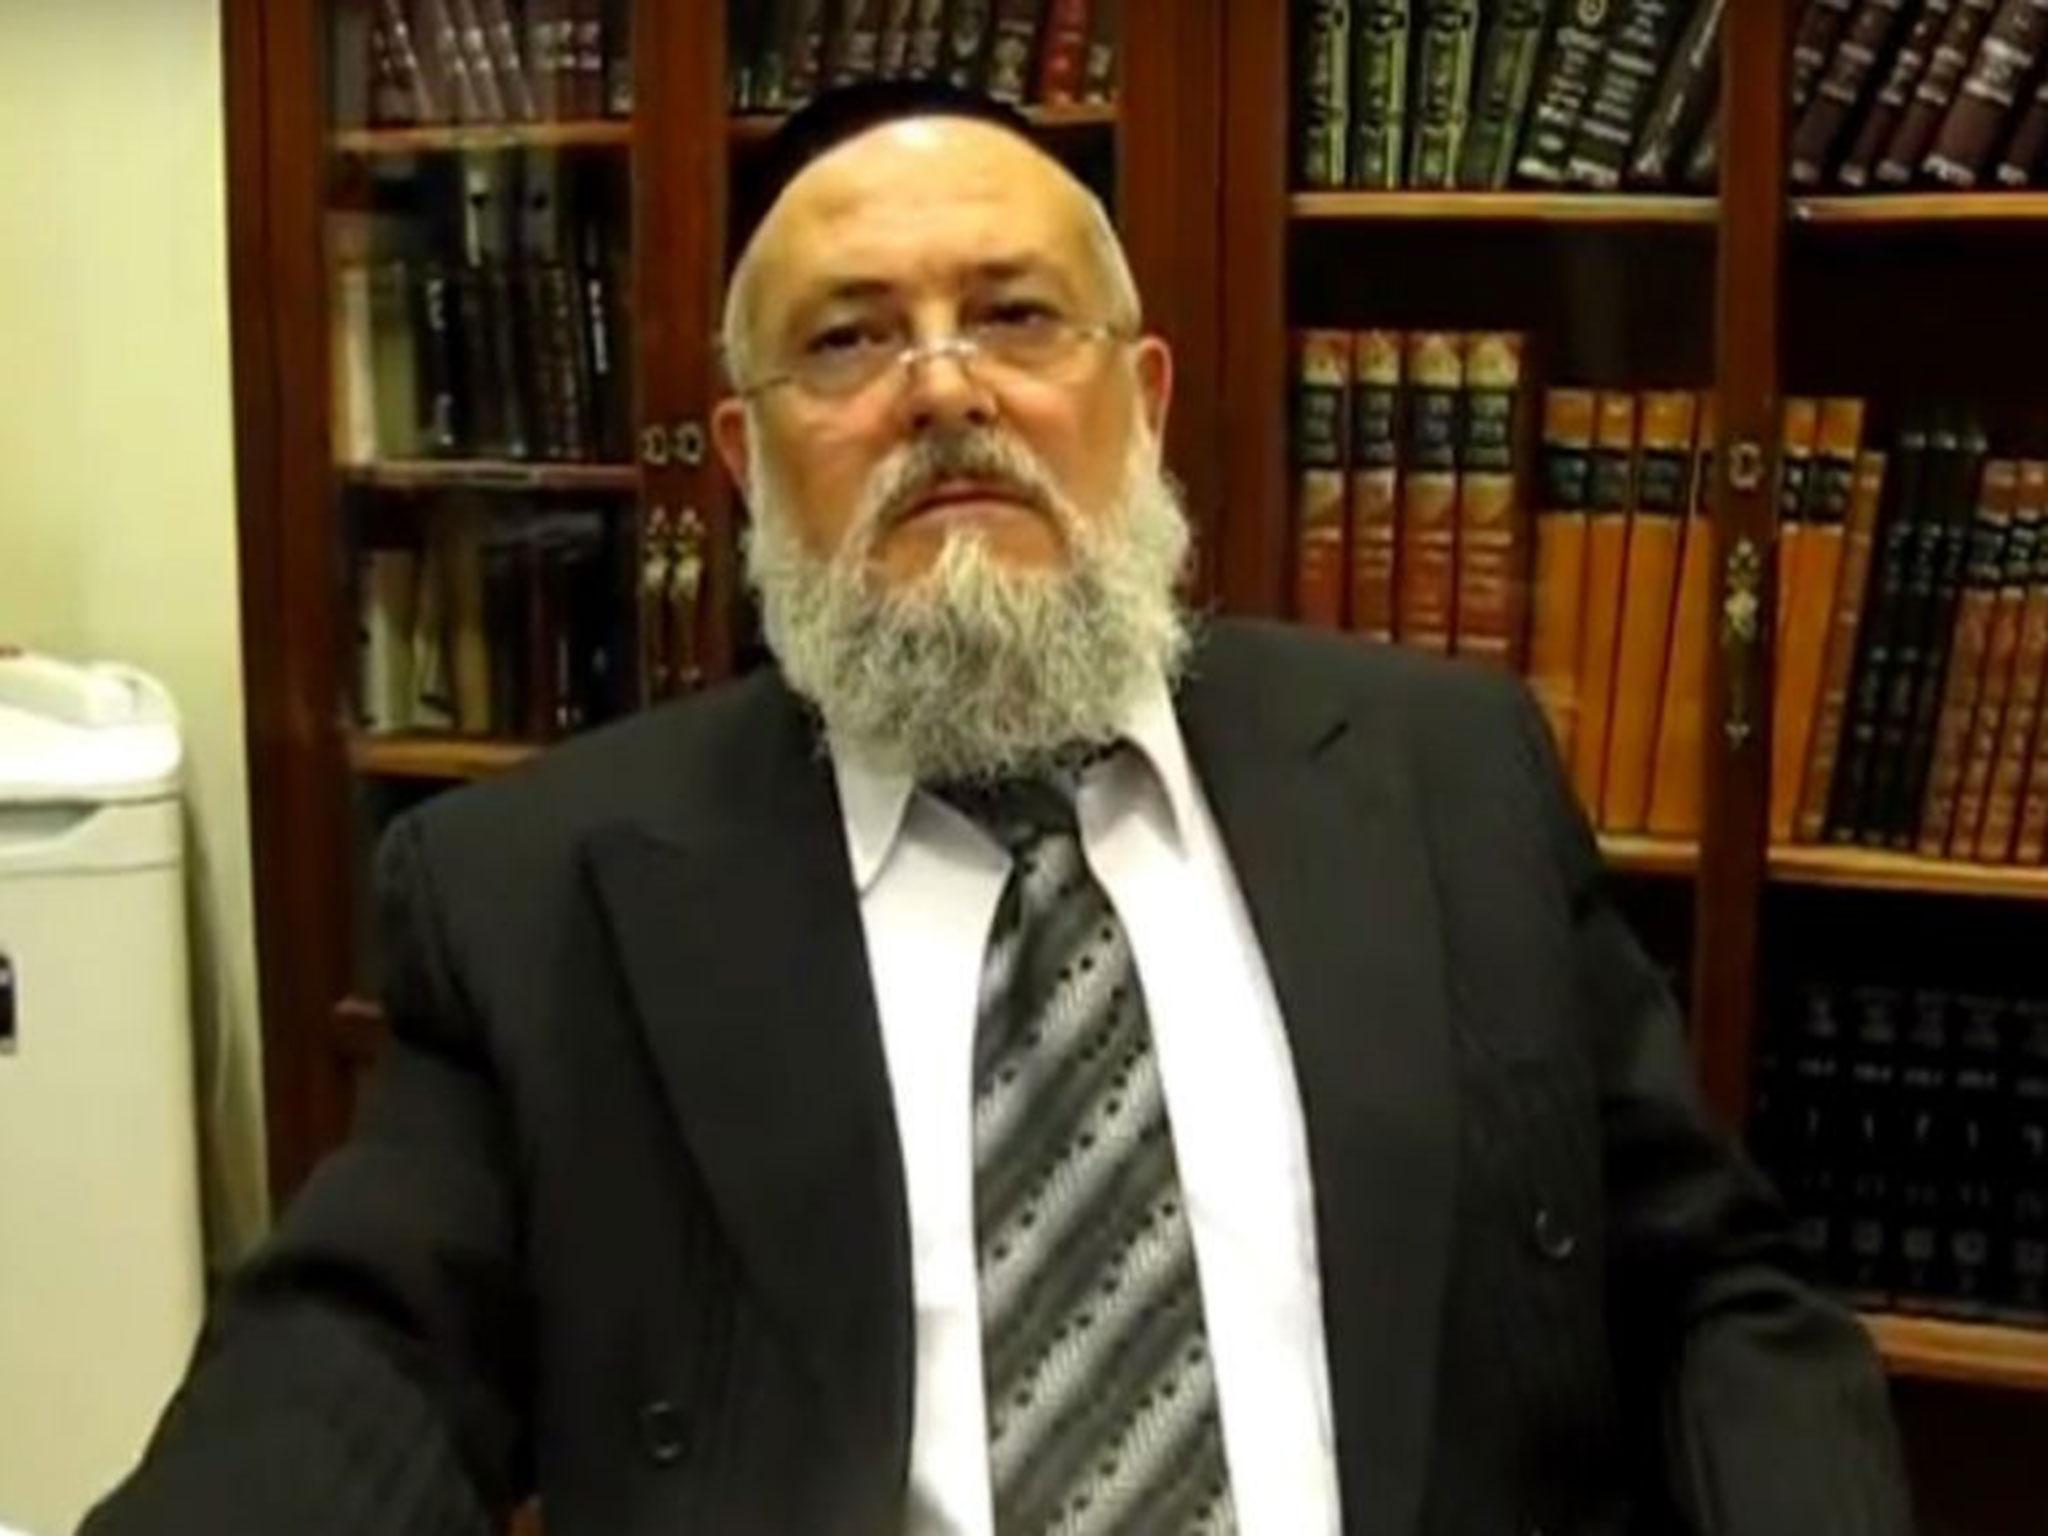 Barcelona's chief rabbi urges Jews to move to Israel because